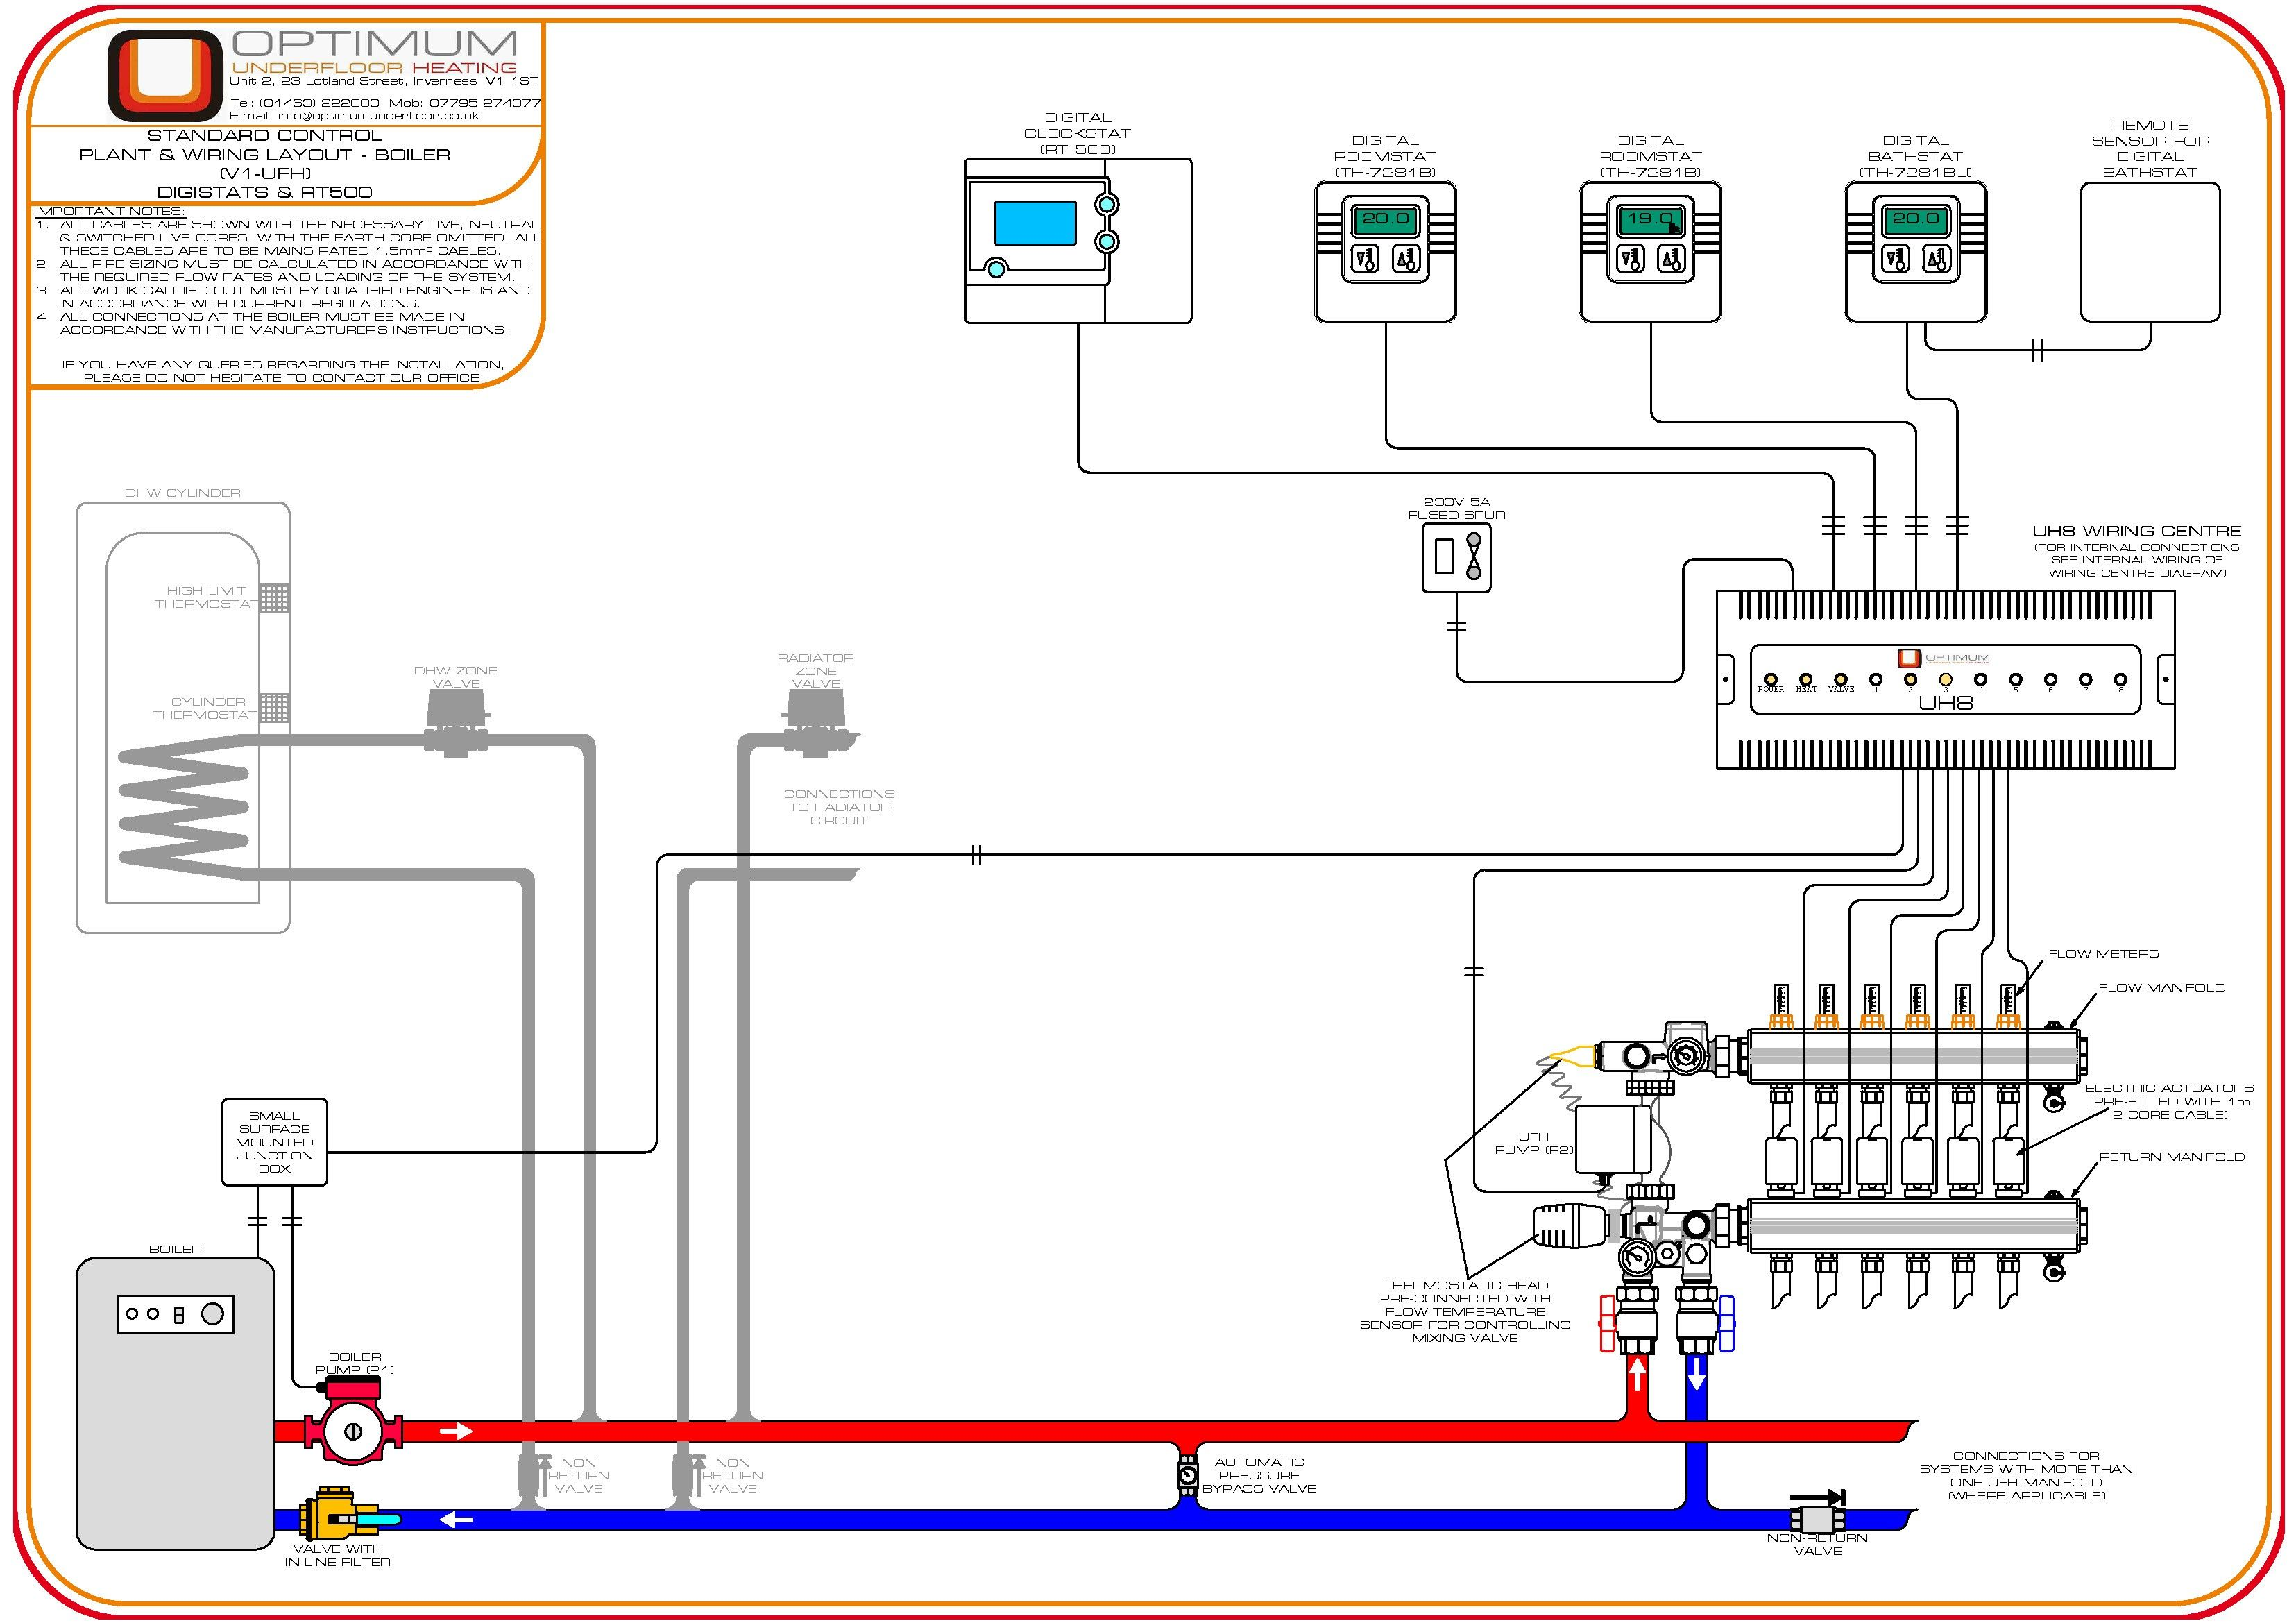 Unique Wiring Diagram Underfloor Heating Diagrams Digramssample Diagramimages Wiring Underfloor Heating Heating And Cooling Units Electrical Wiring Diagram